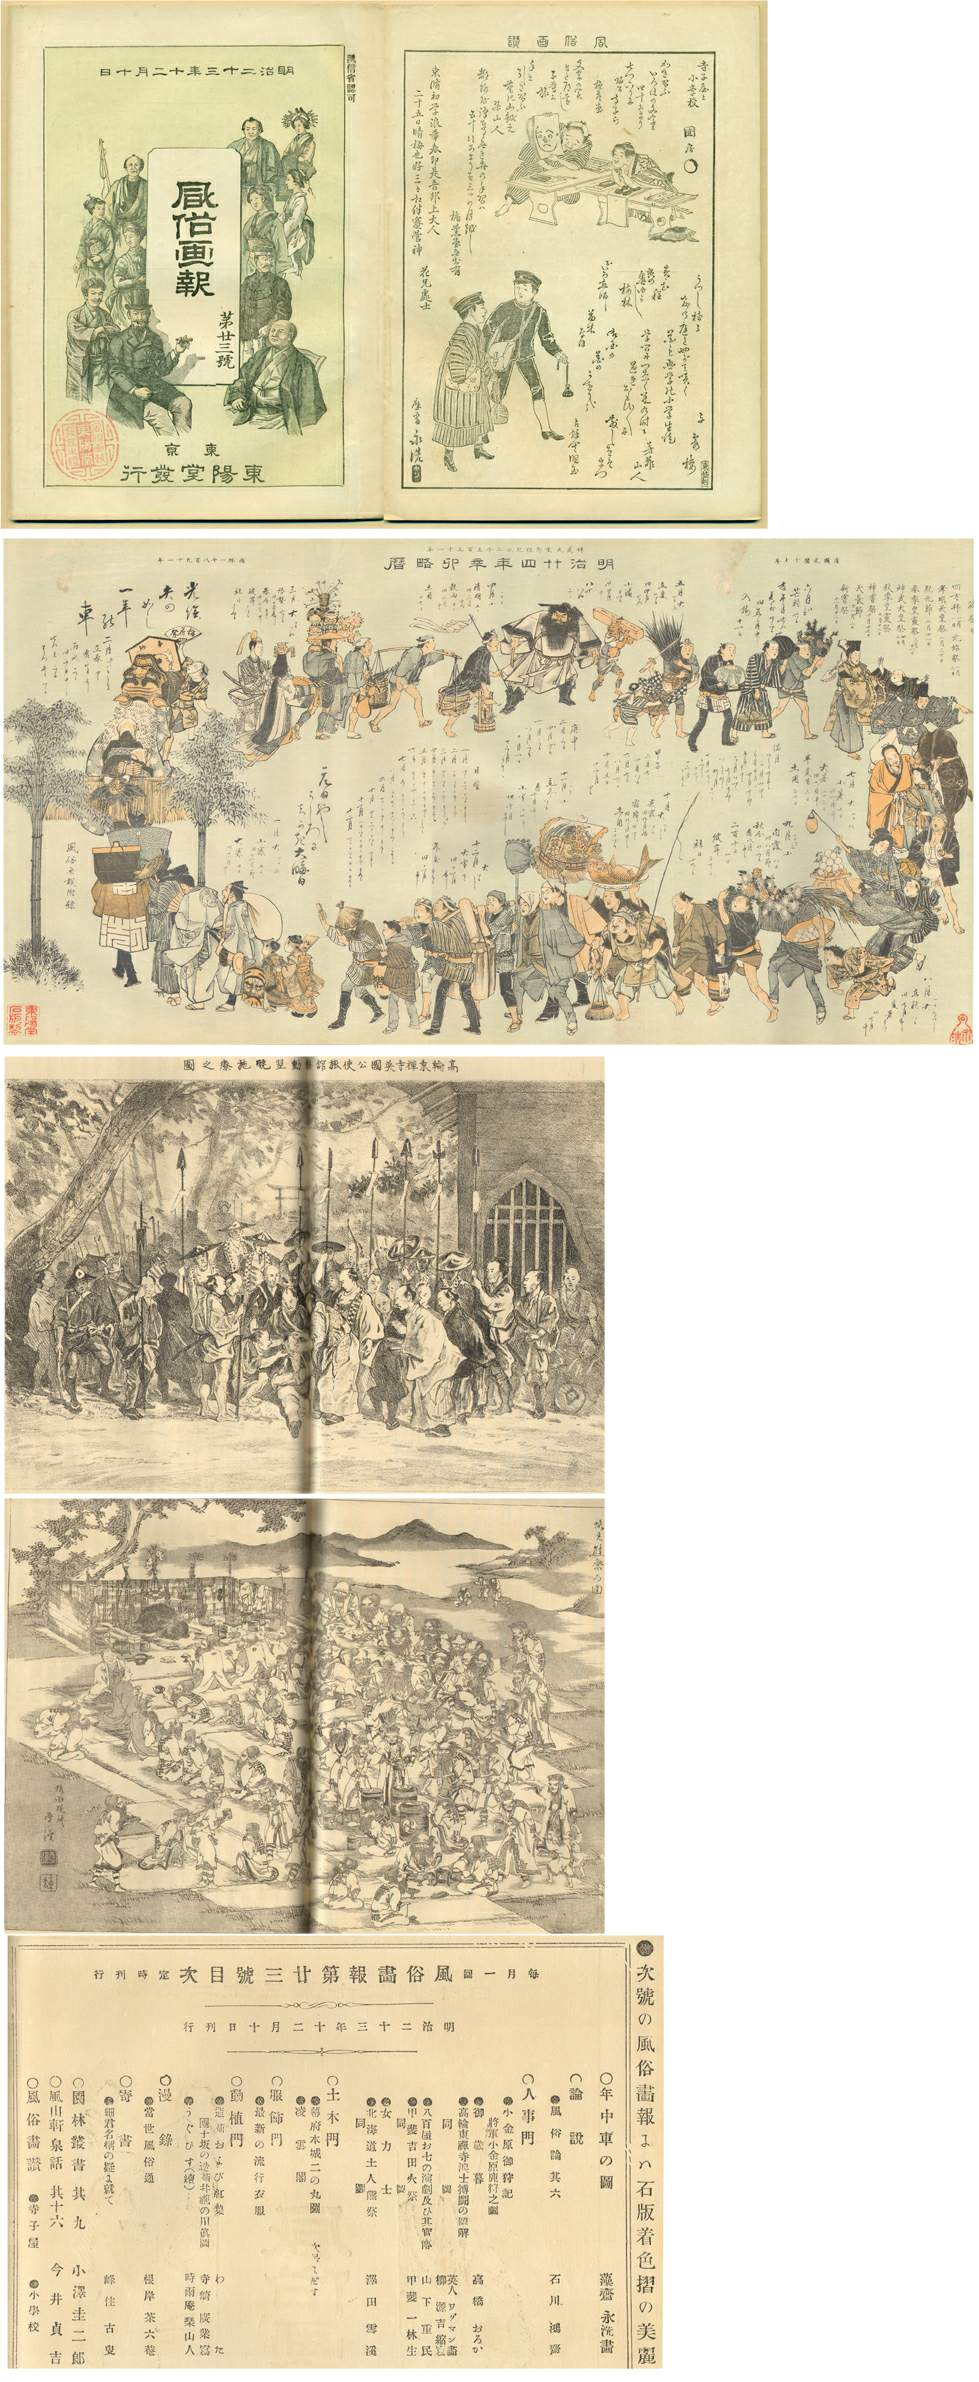 23 meiji 2318901210 24 numbered pages large two fold out color woodcut lithograph plate the aino woodcut very good 1892081140 23